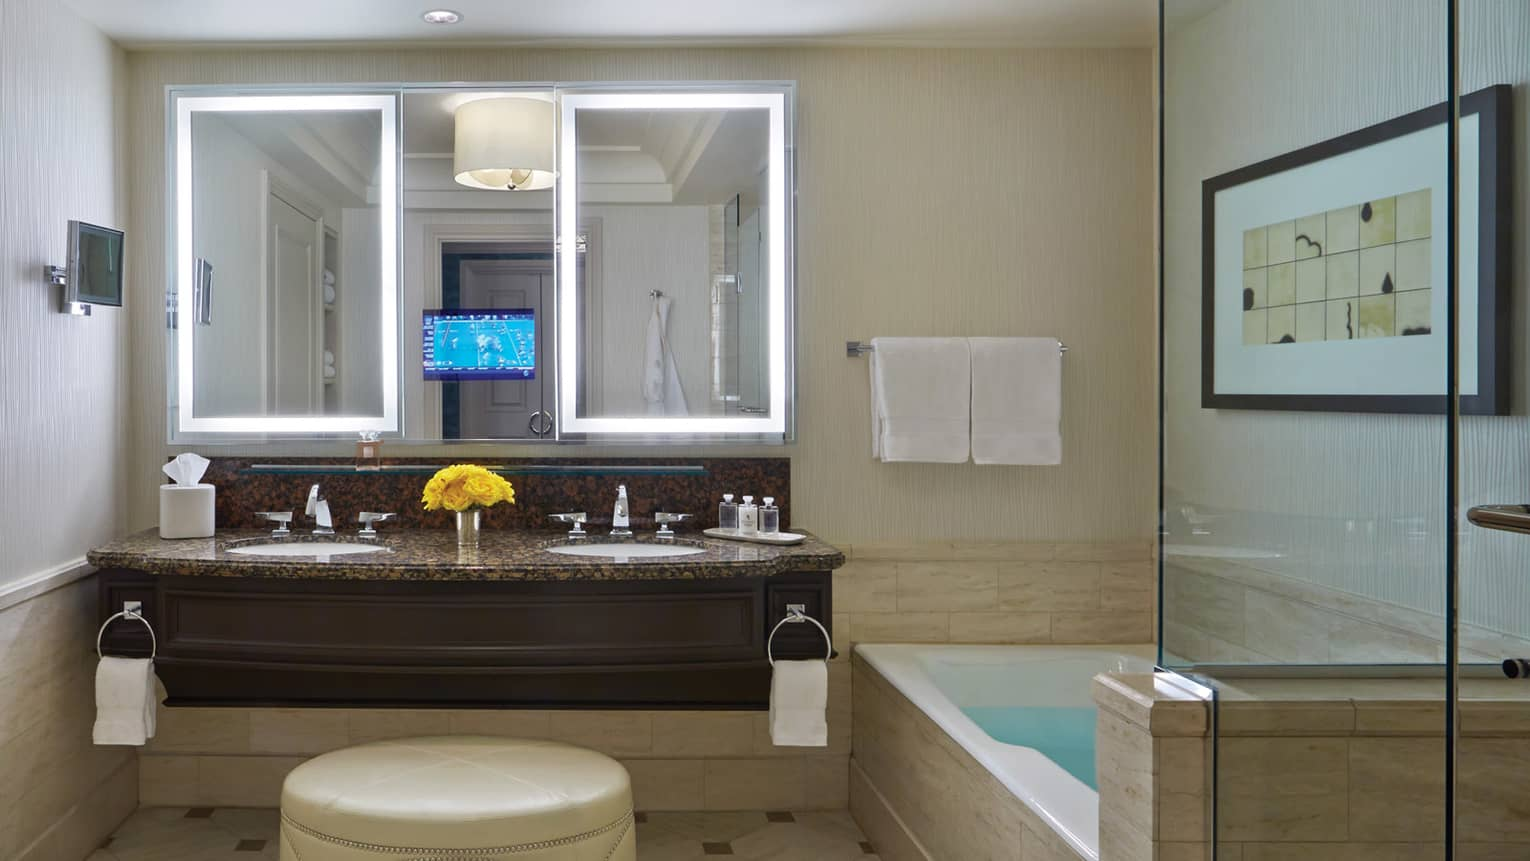 Hotel bathroom with double sink vanity, bathtub with glass wall